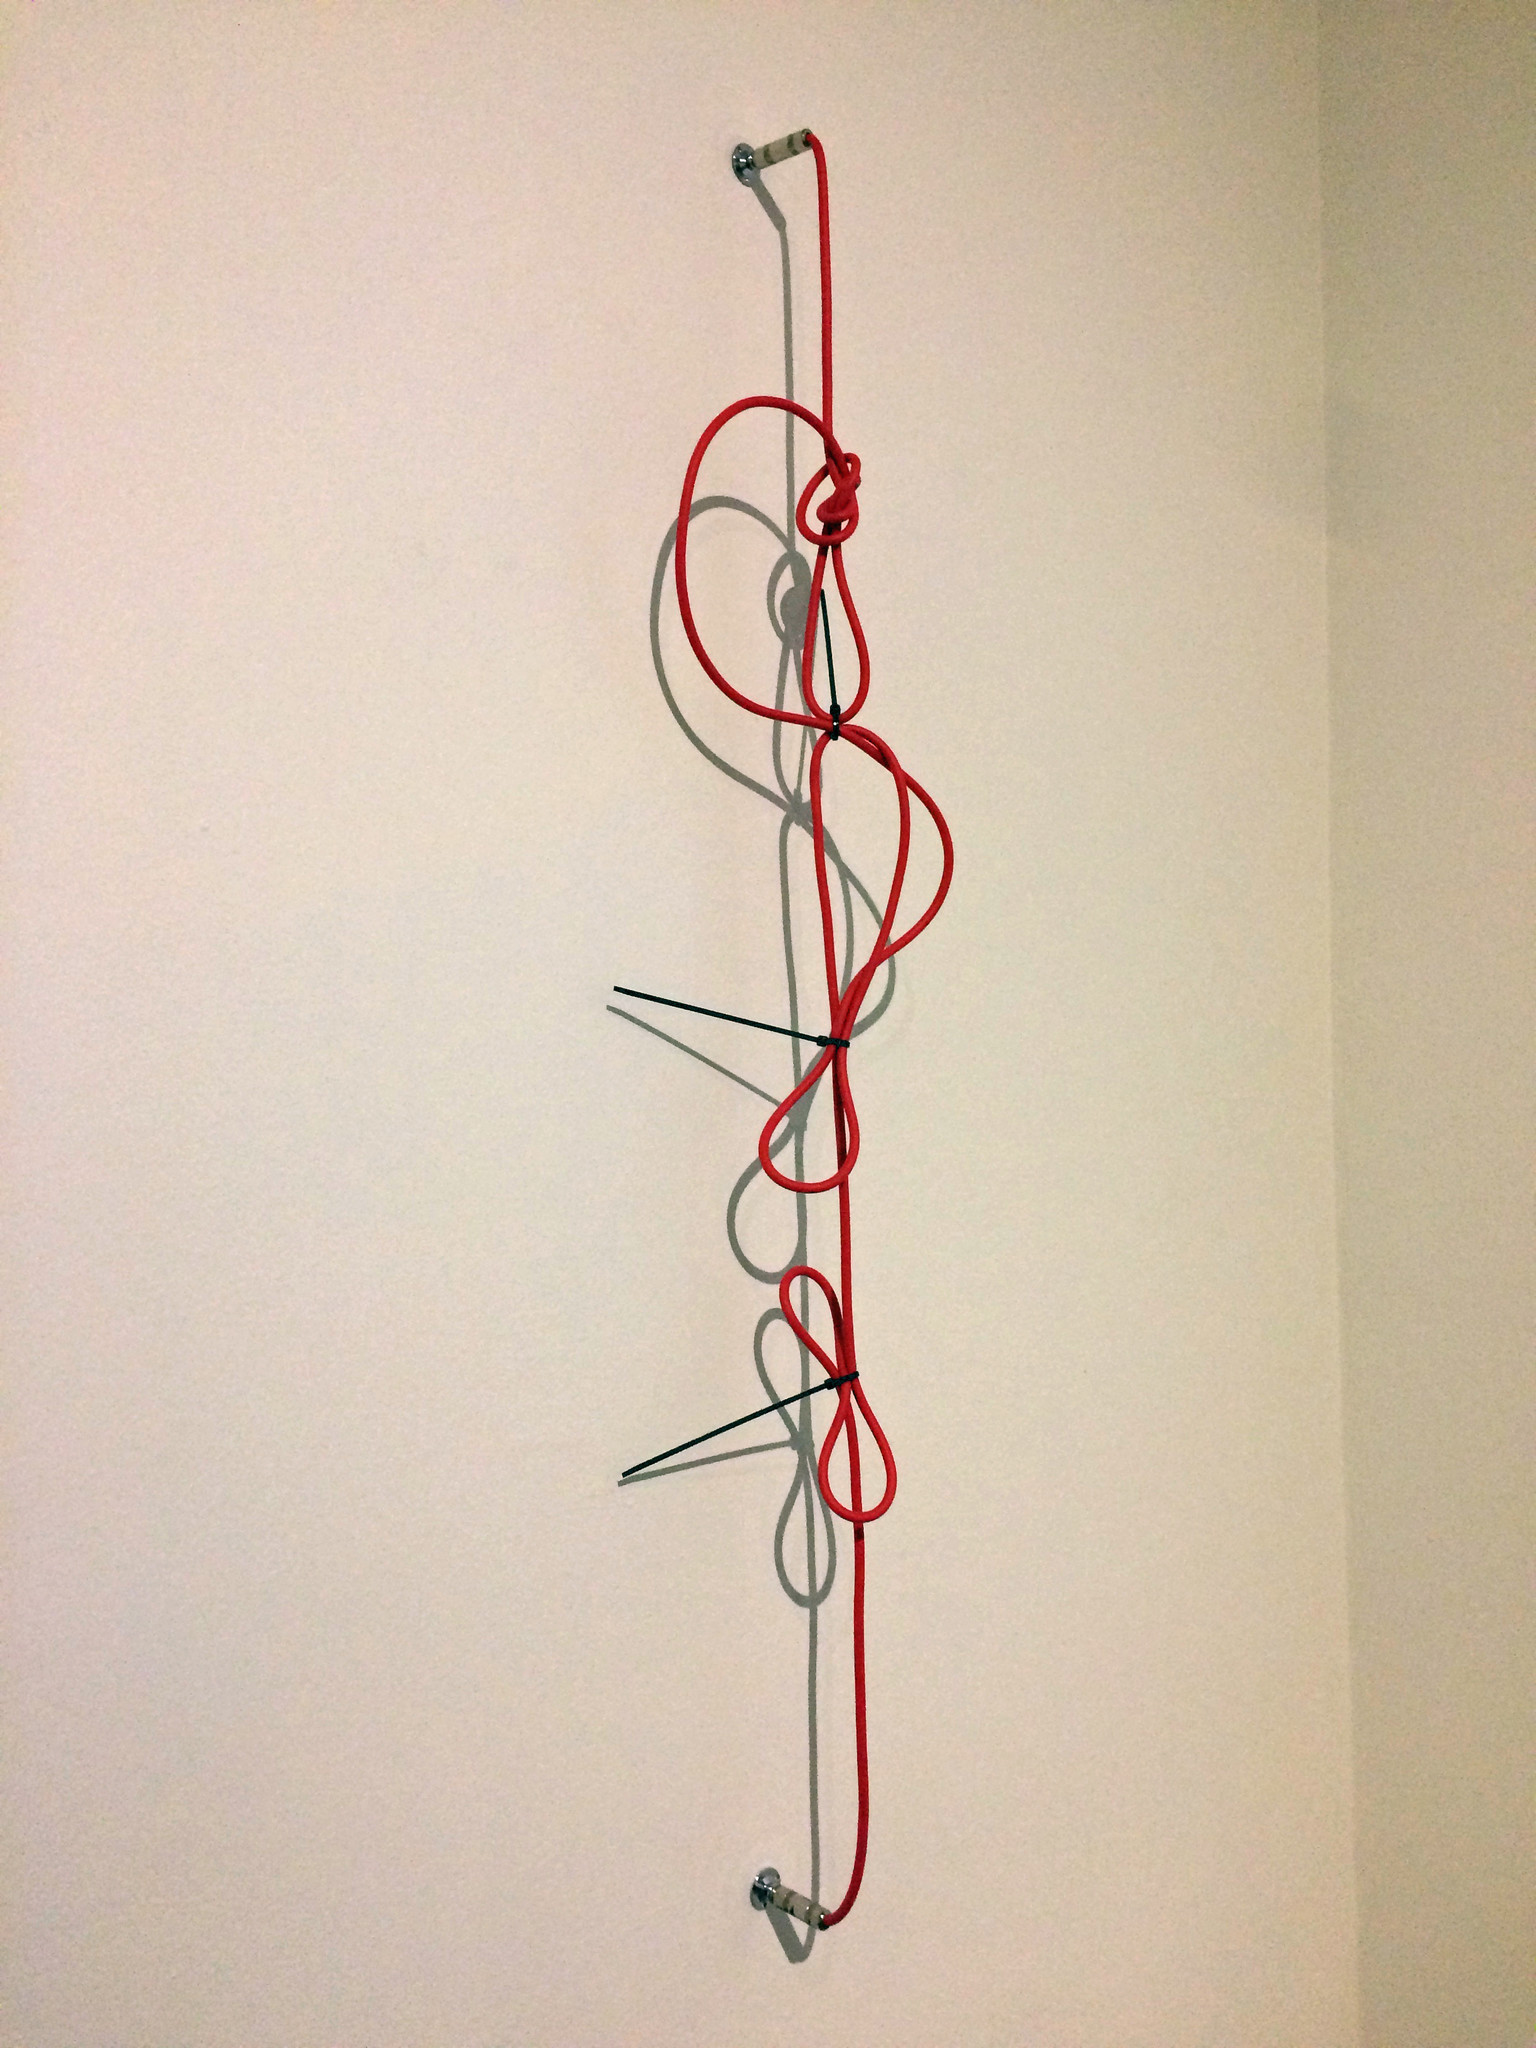 """SHHH, The Red Series #2,"" by Jennie C. Jones, a wall piece from 2014 that plays with form and color."